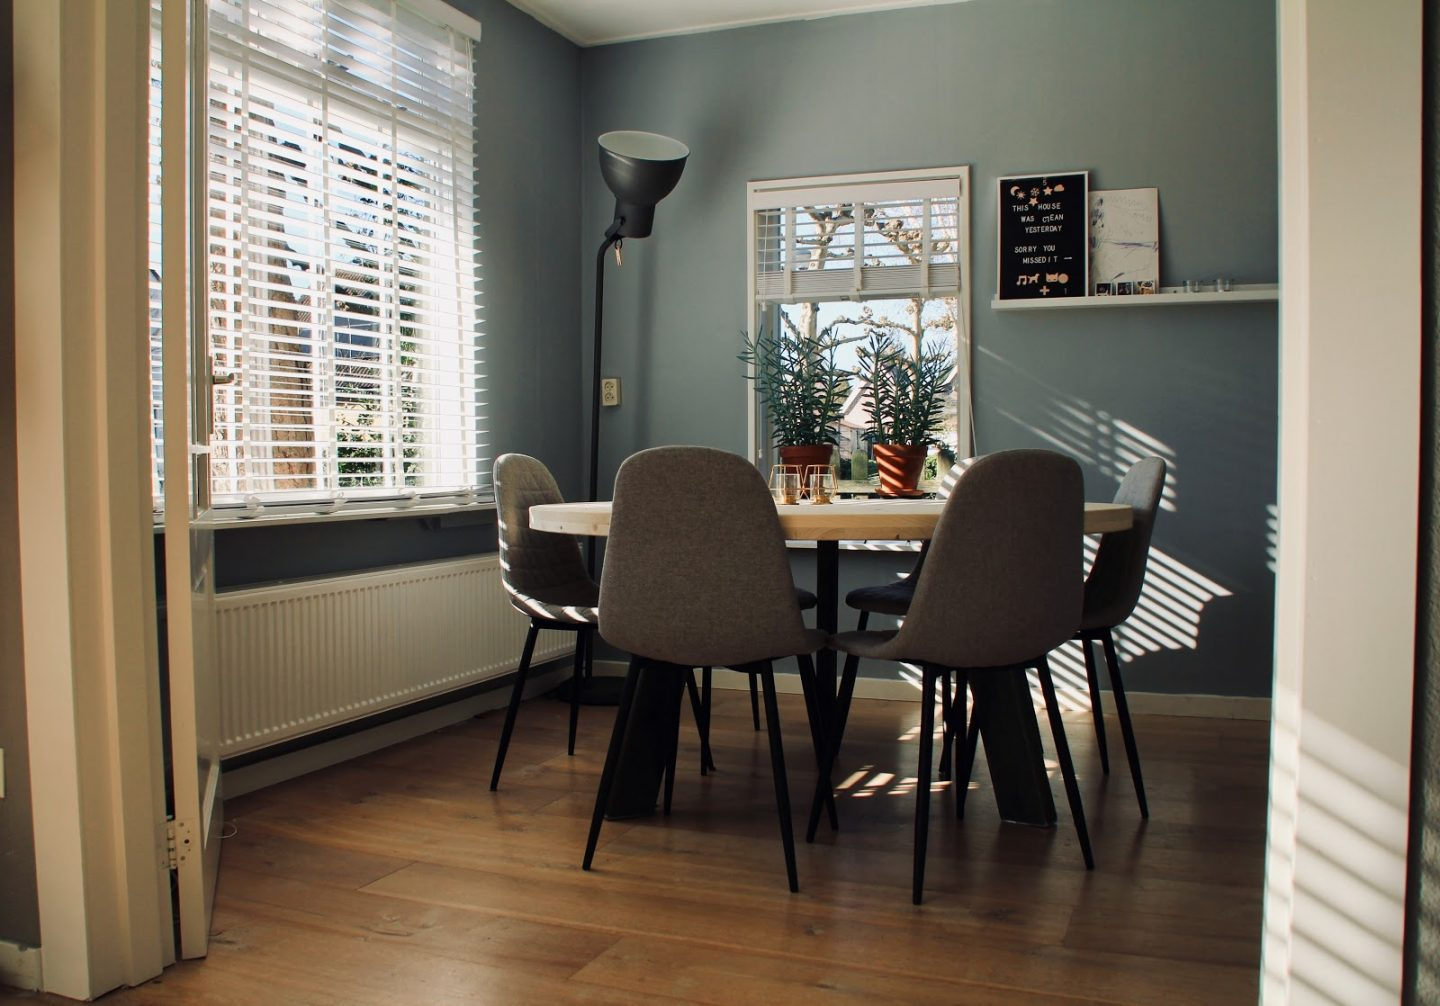 How To Match Your Curtains And Blinds To Your Home Decor